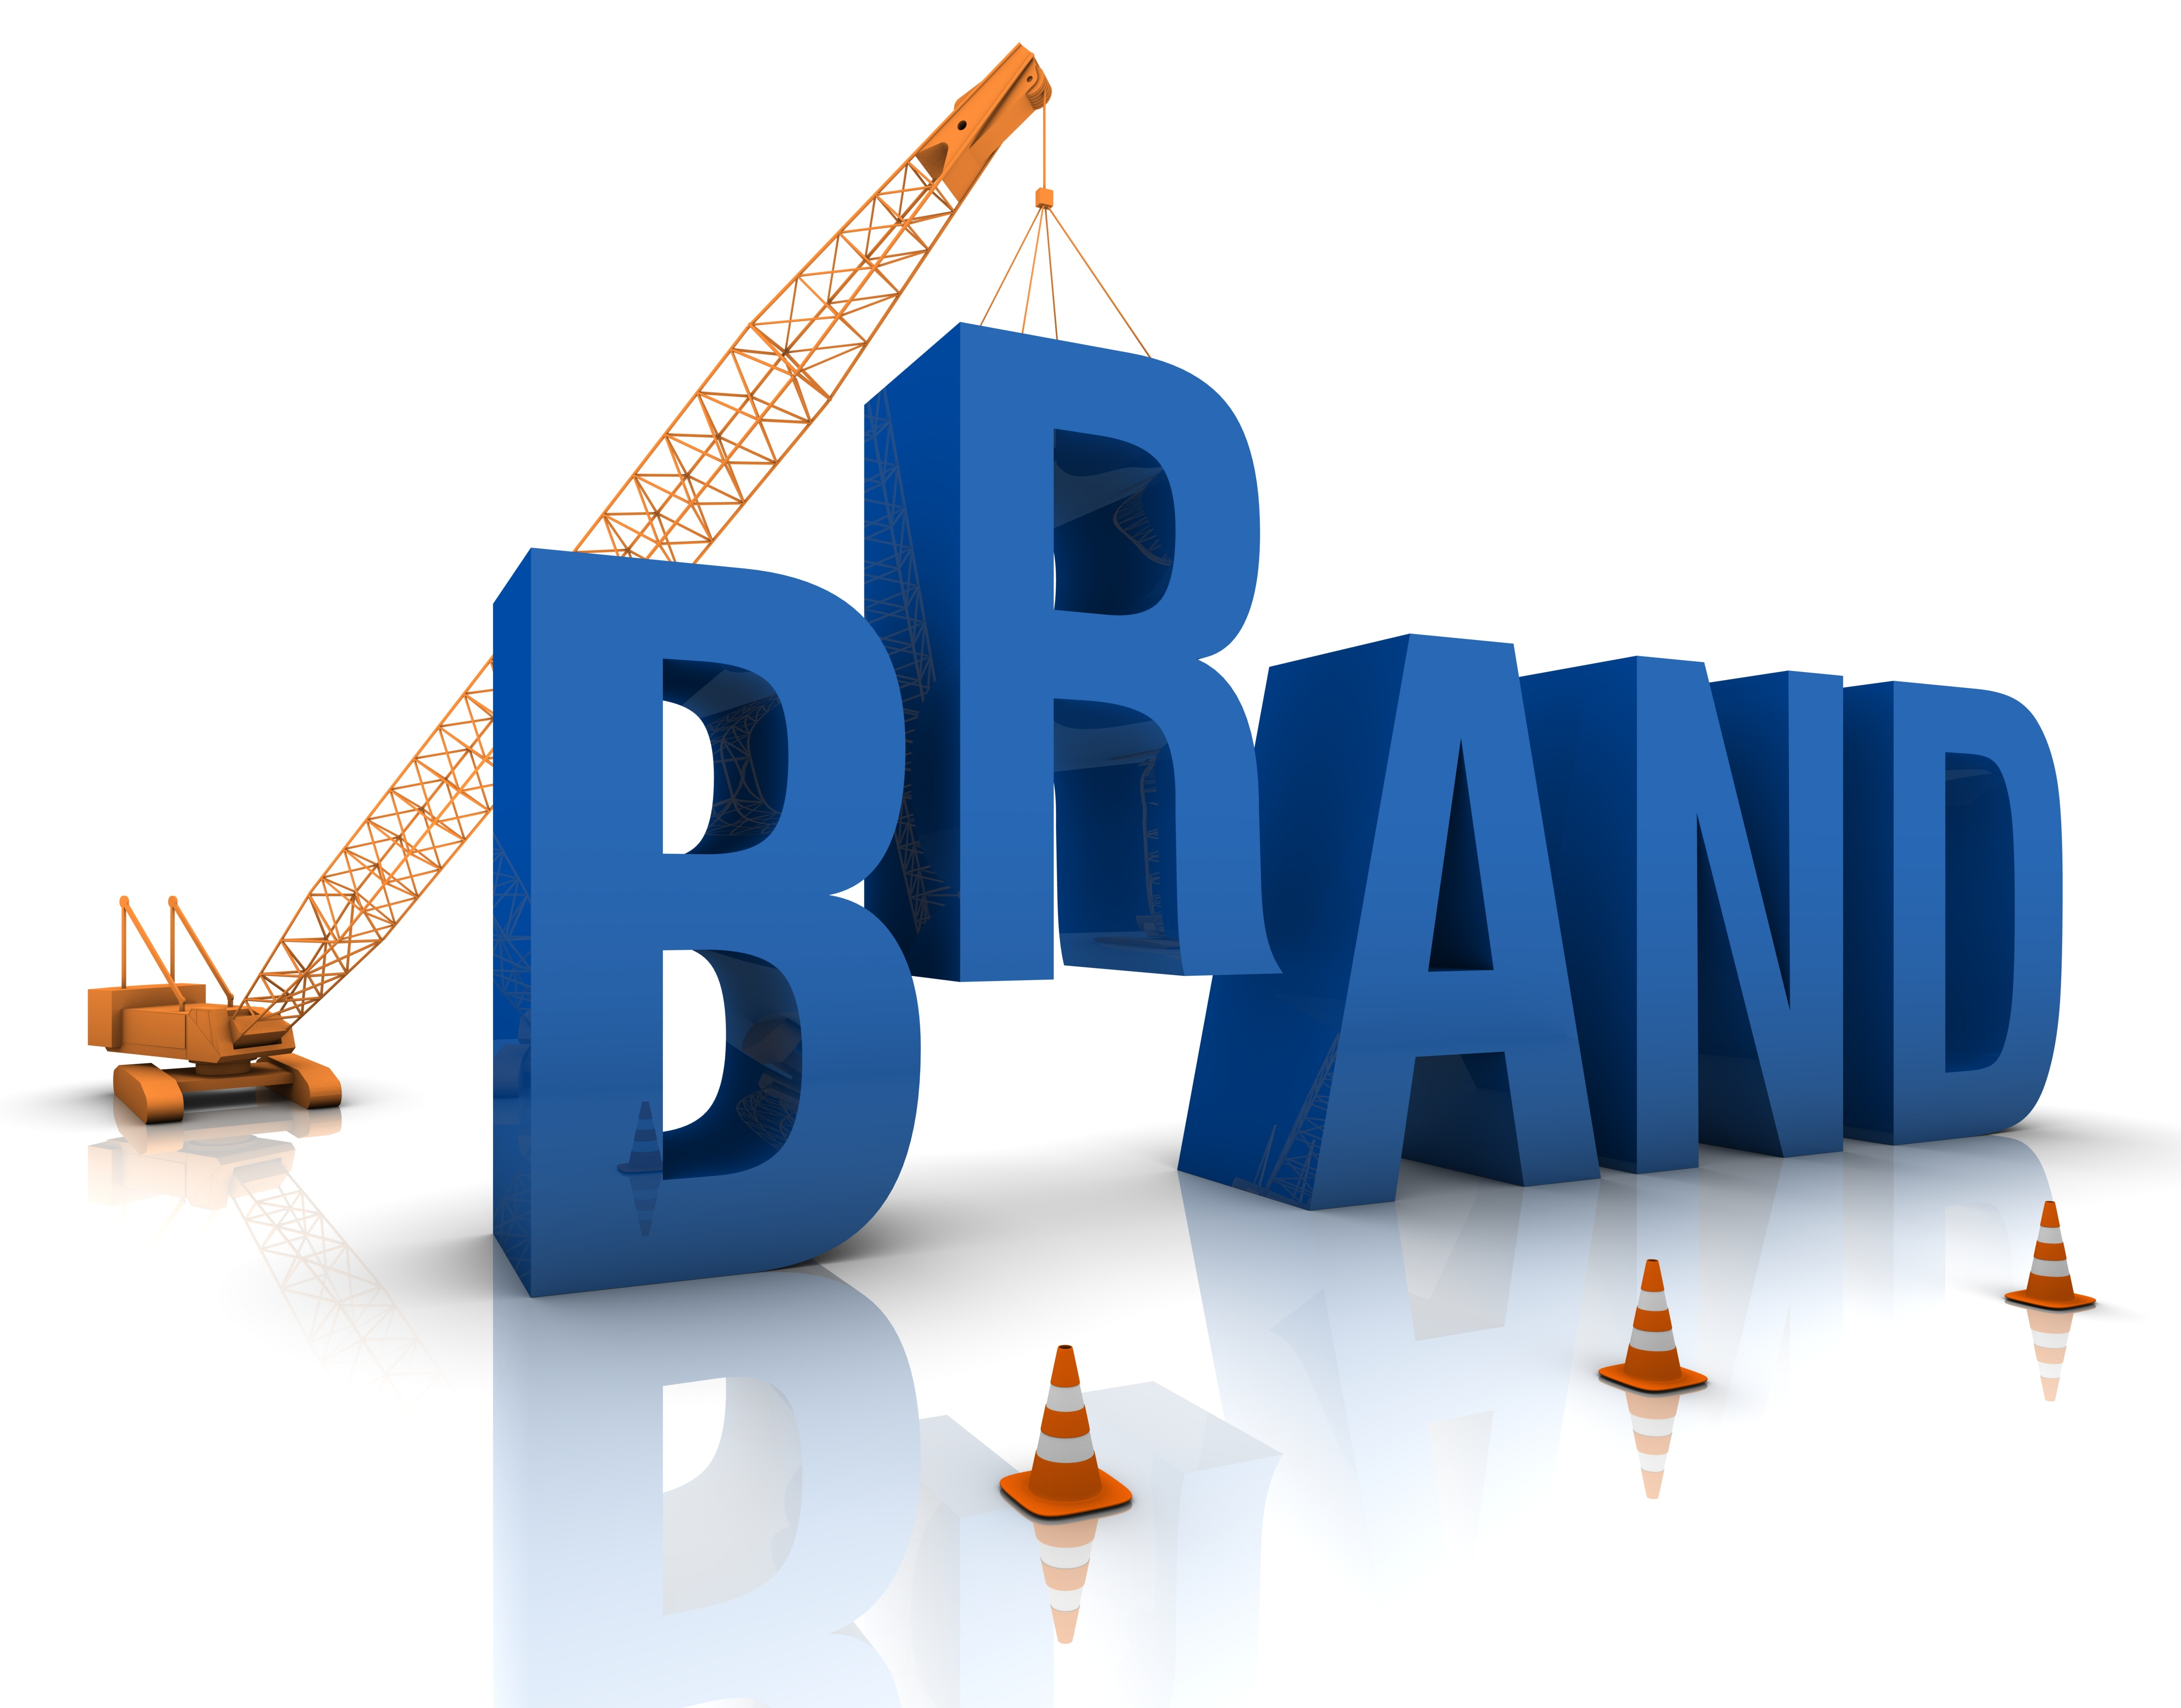 Brand building CMB